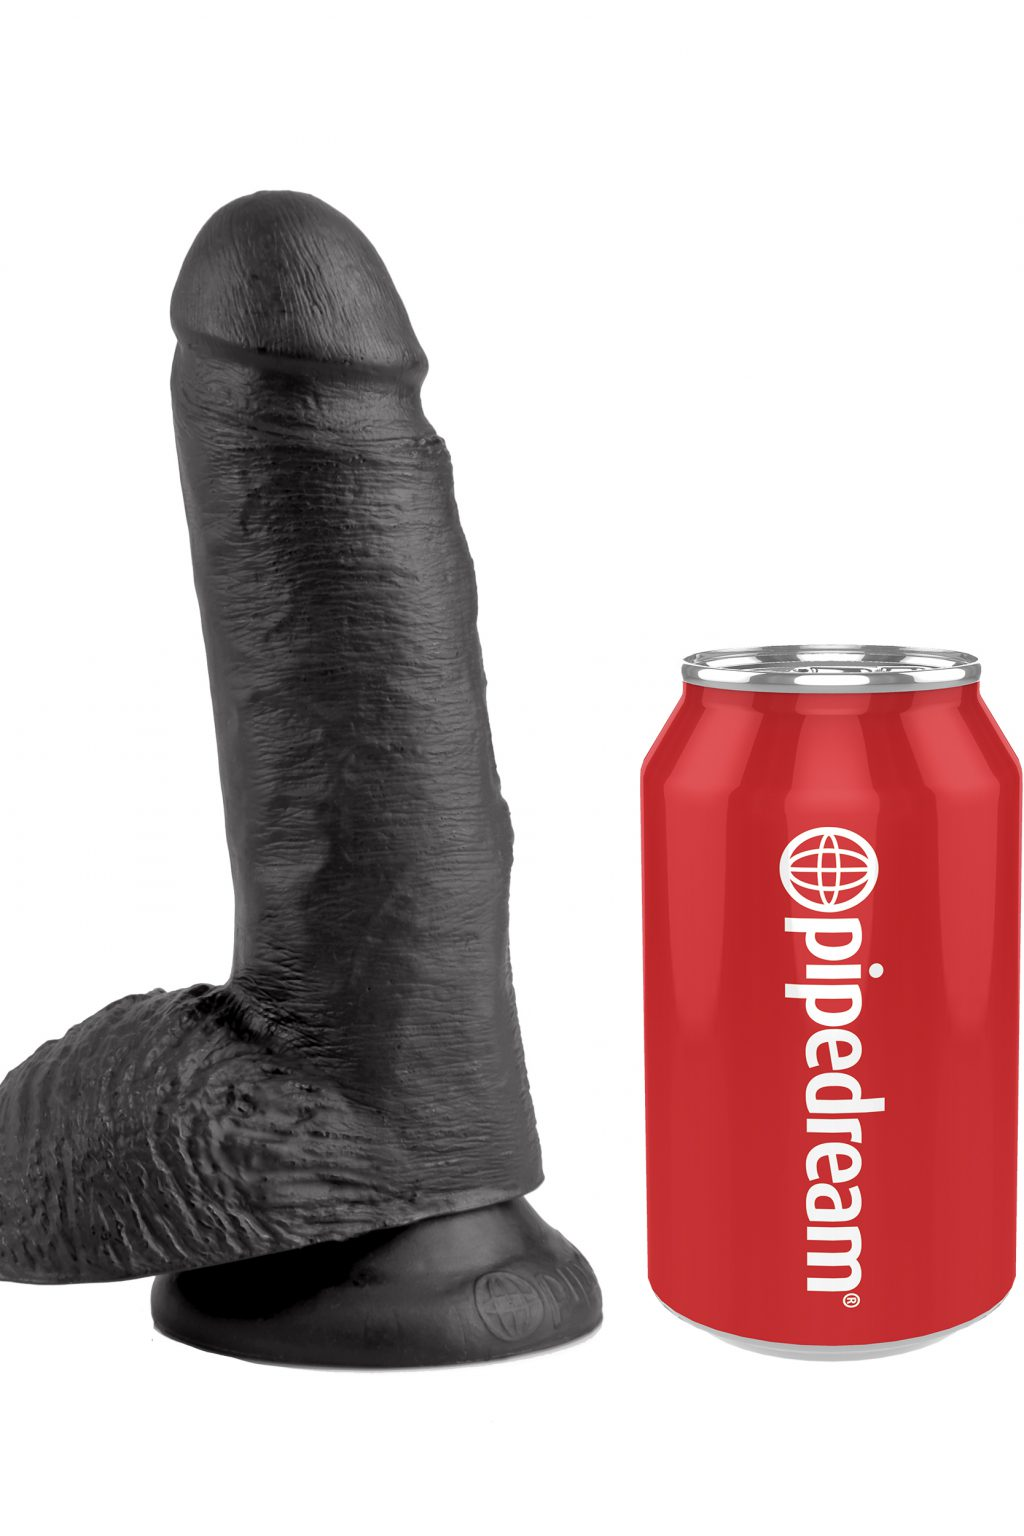 Cock with Balls 18cm - Black